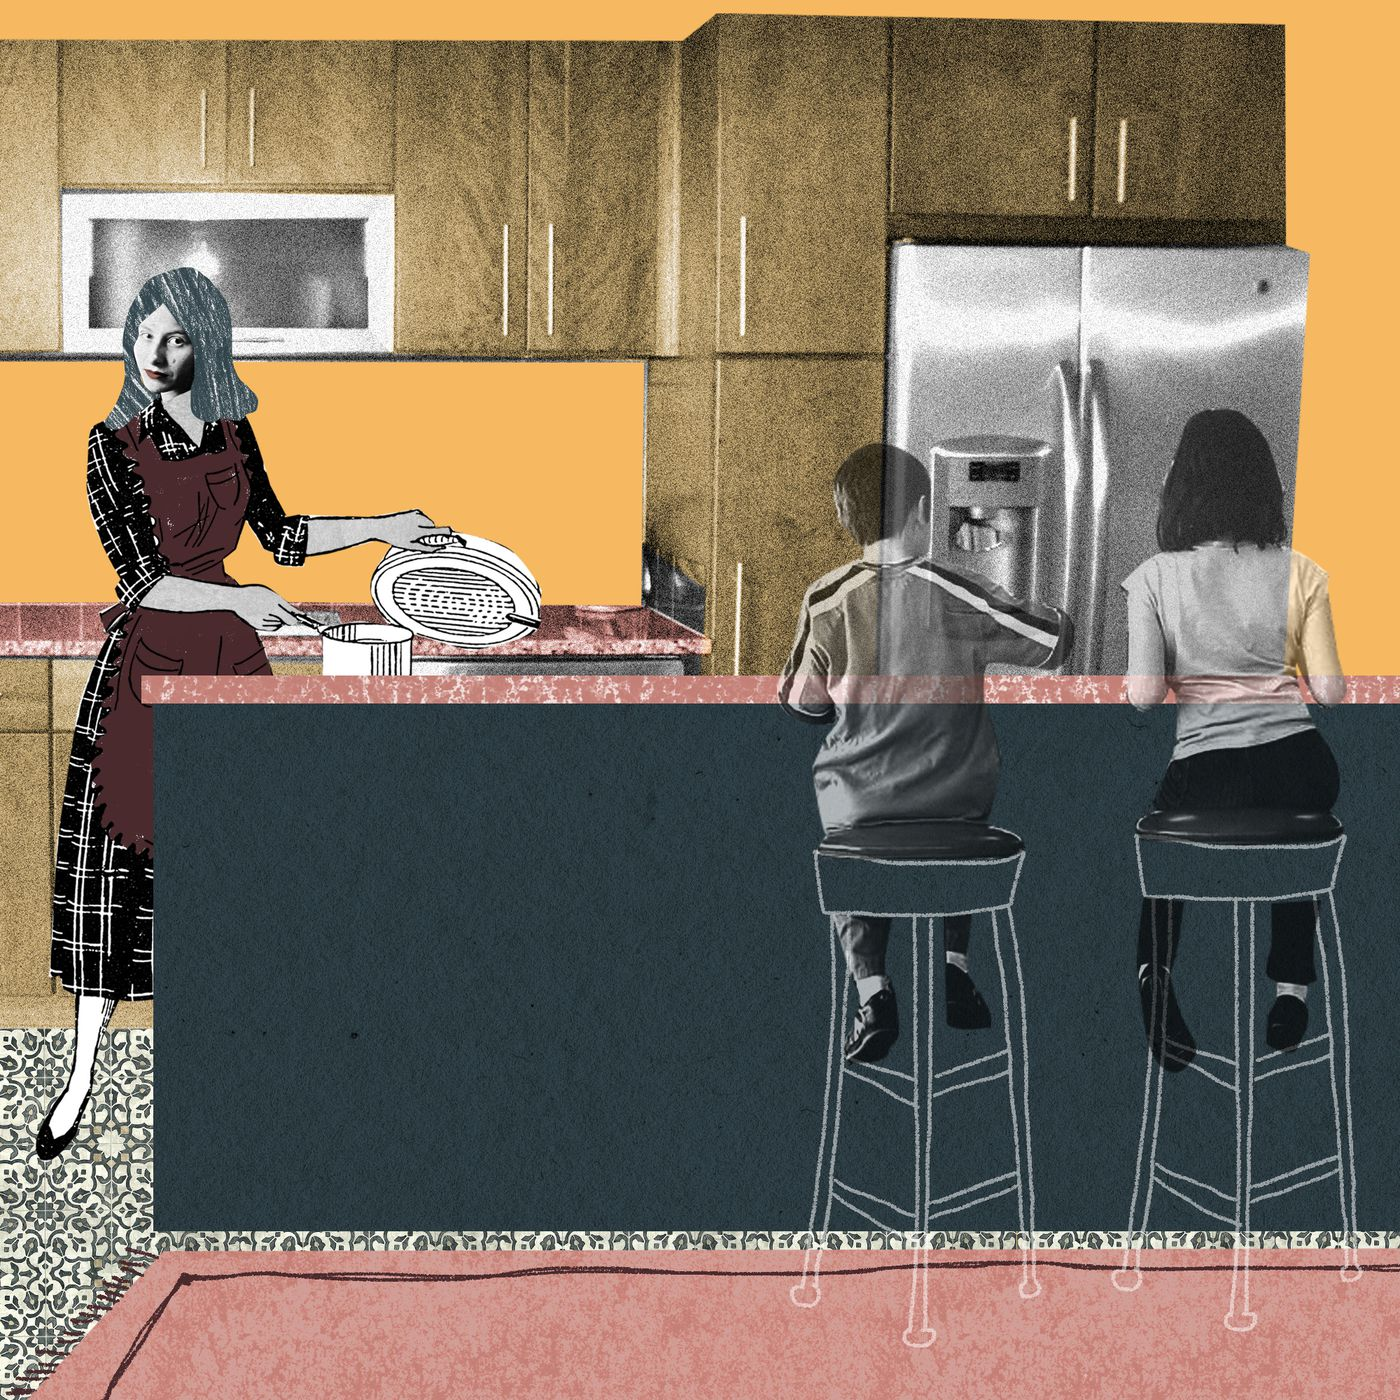 Designing the perfect kitchen island - Curbed